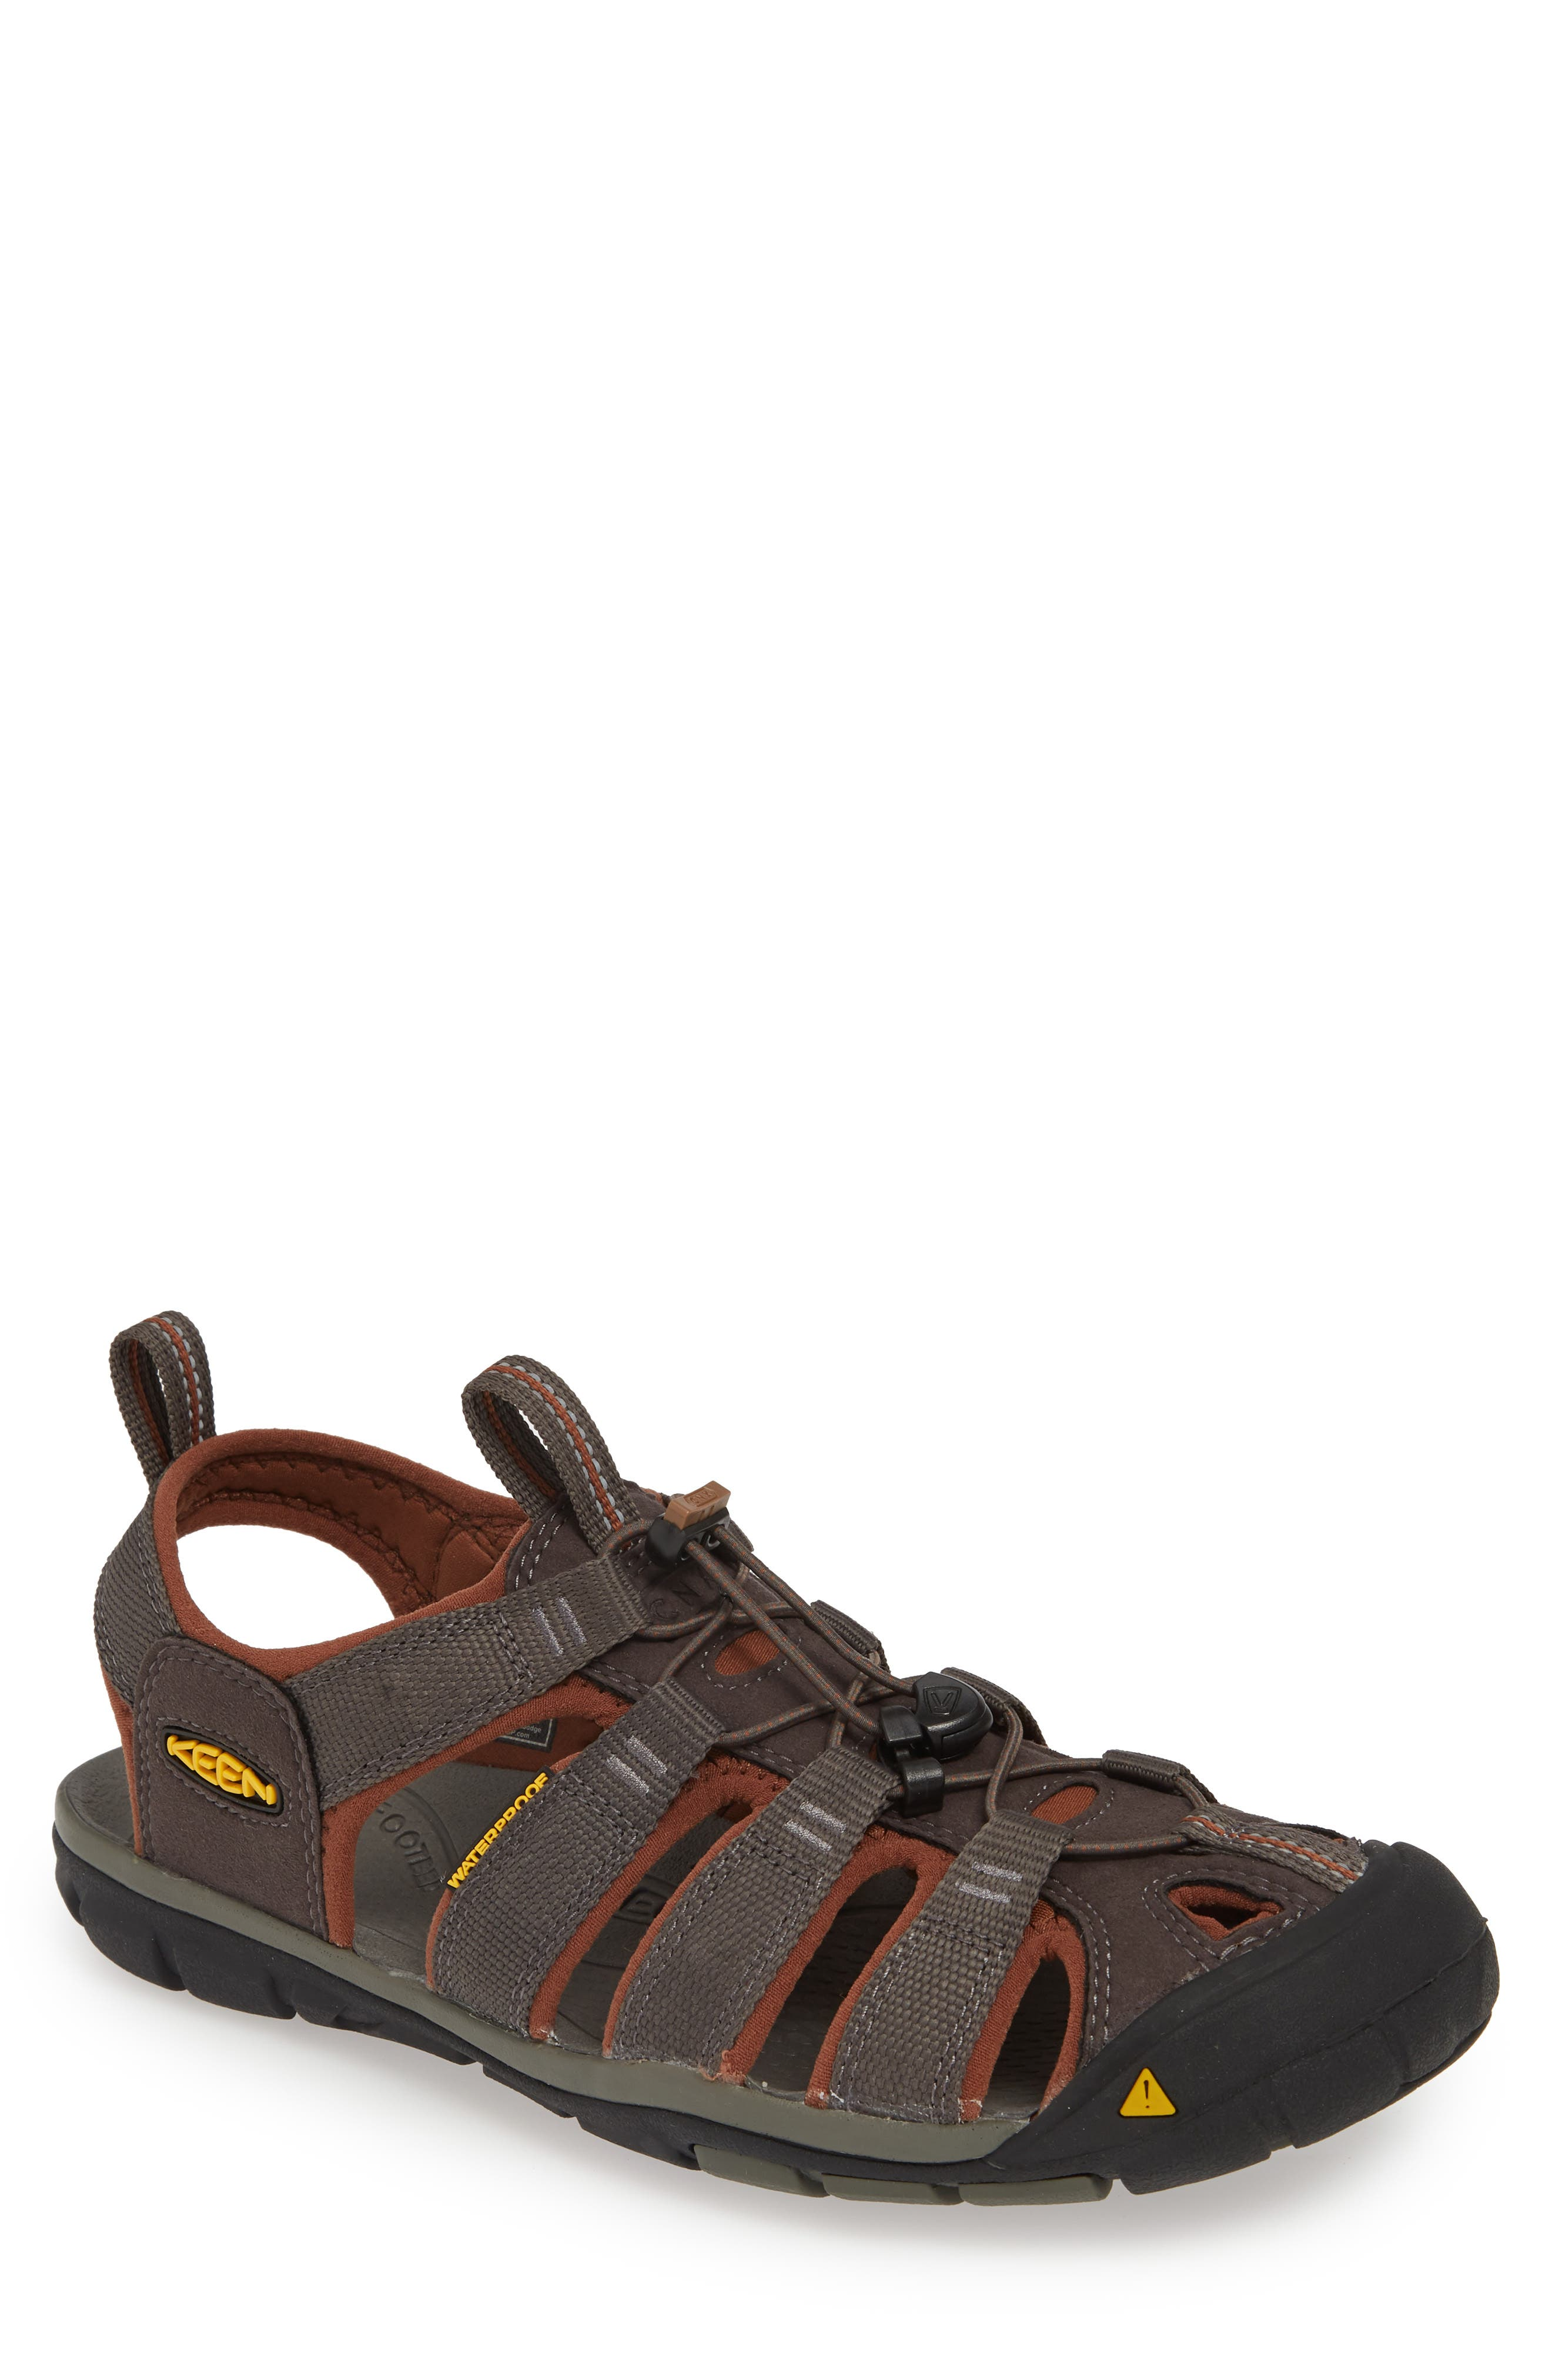 KEEN, 'Clearwater CNX' Sandal, Main thumbnail 1, color, RAVEN/ TORTOISE SHELL